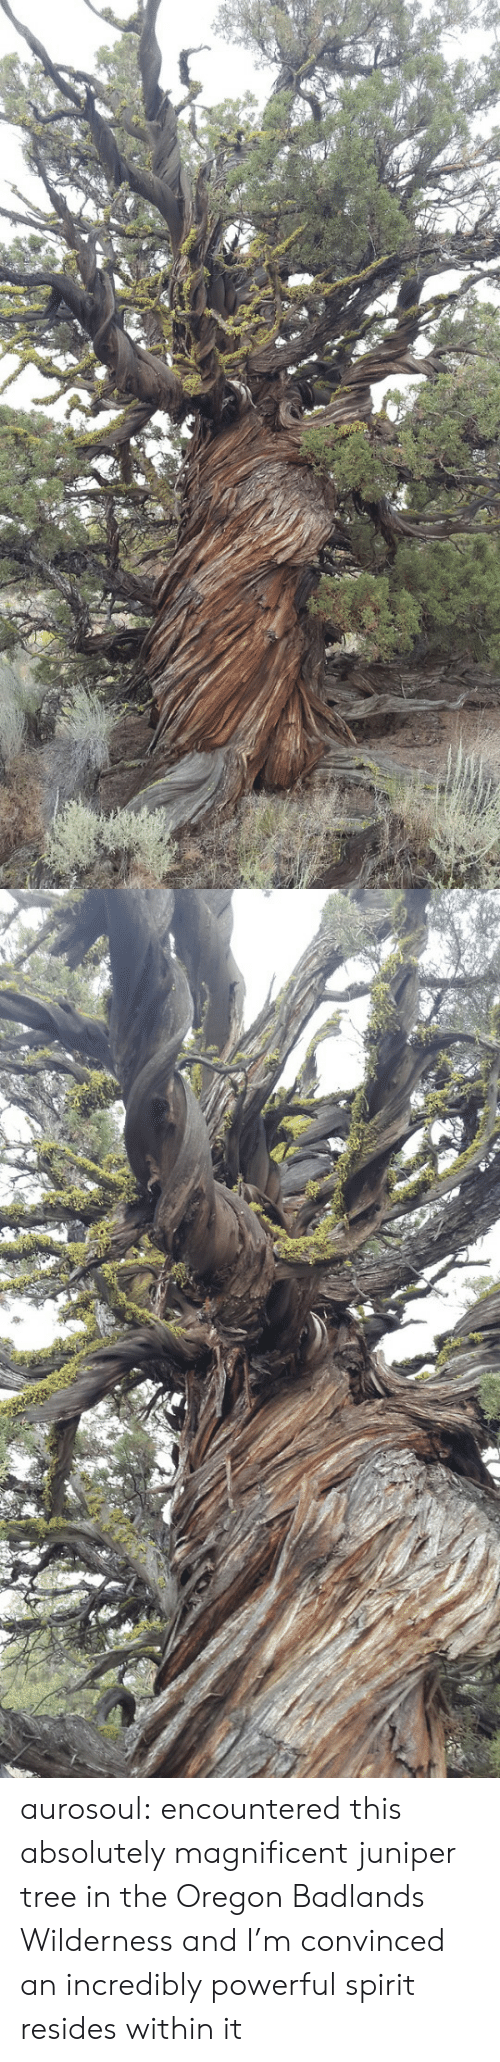 Wilderness: aurosoul: encountered this absolutely magnificent juniper tree in the Oregon Badlands Wilderness and I'm convinced an incredibly powerful spirit resides within it